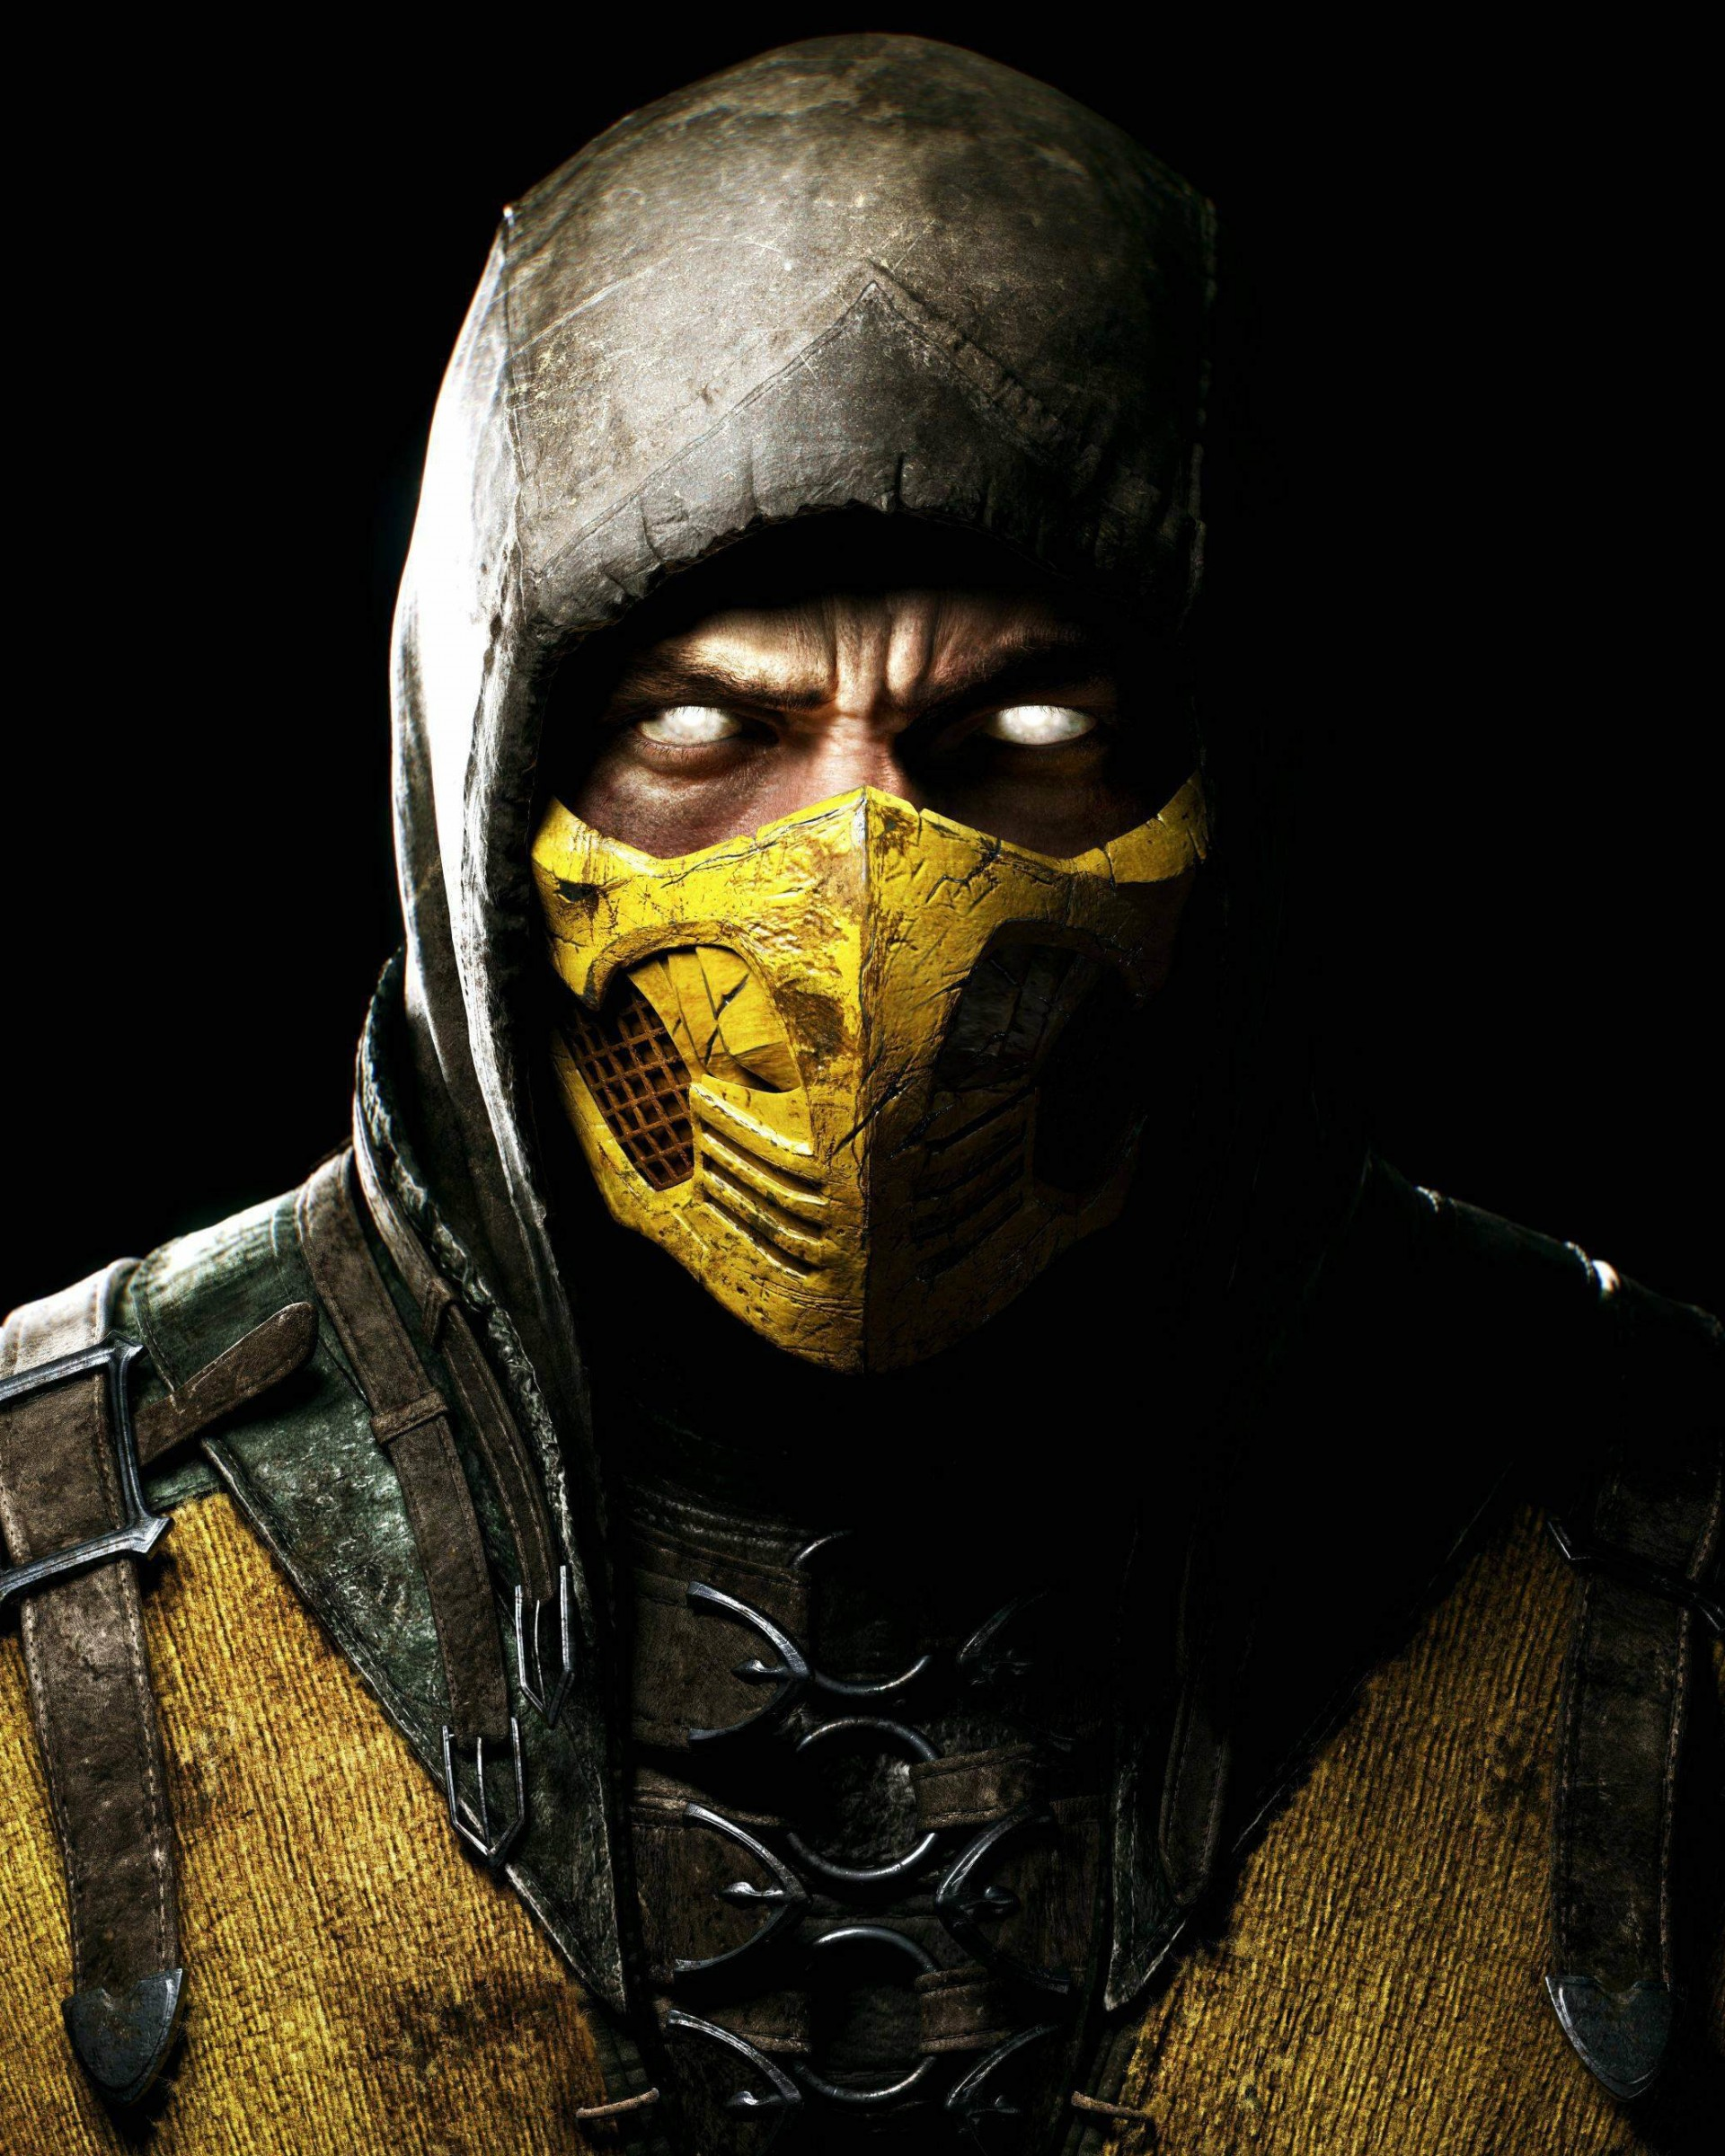 Scorpion Mortal Kombat X Wallpaper for Google Nexus 7